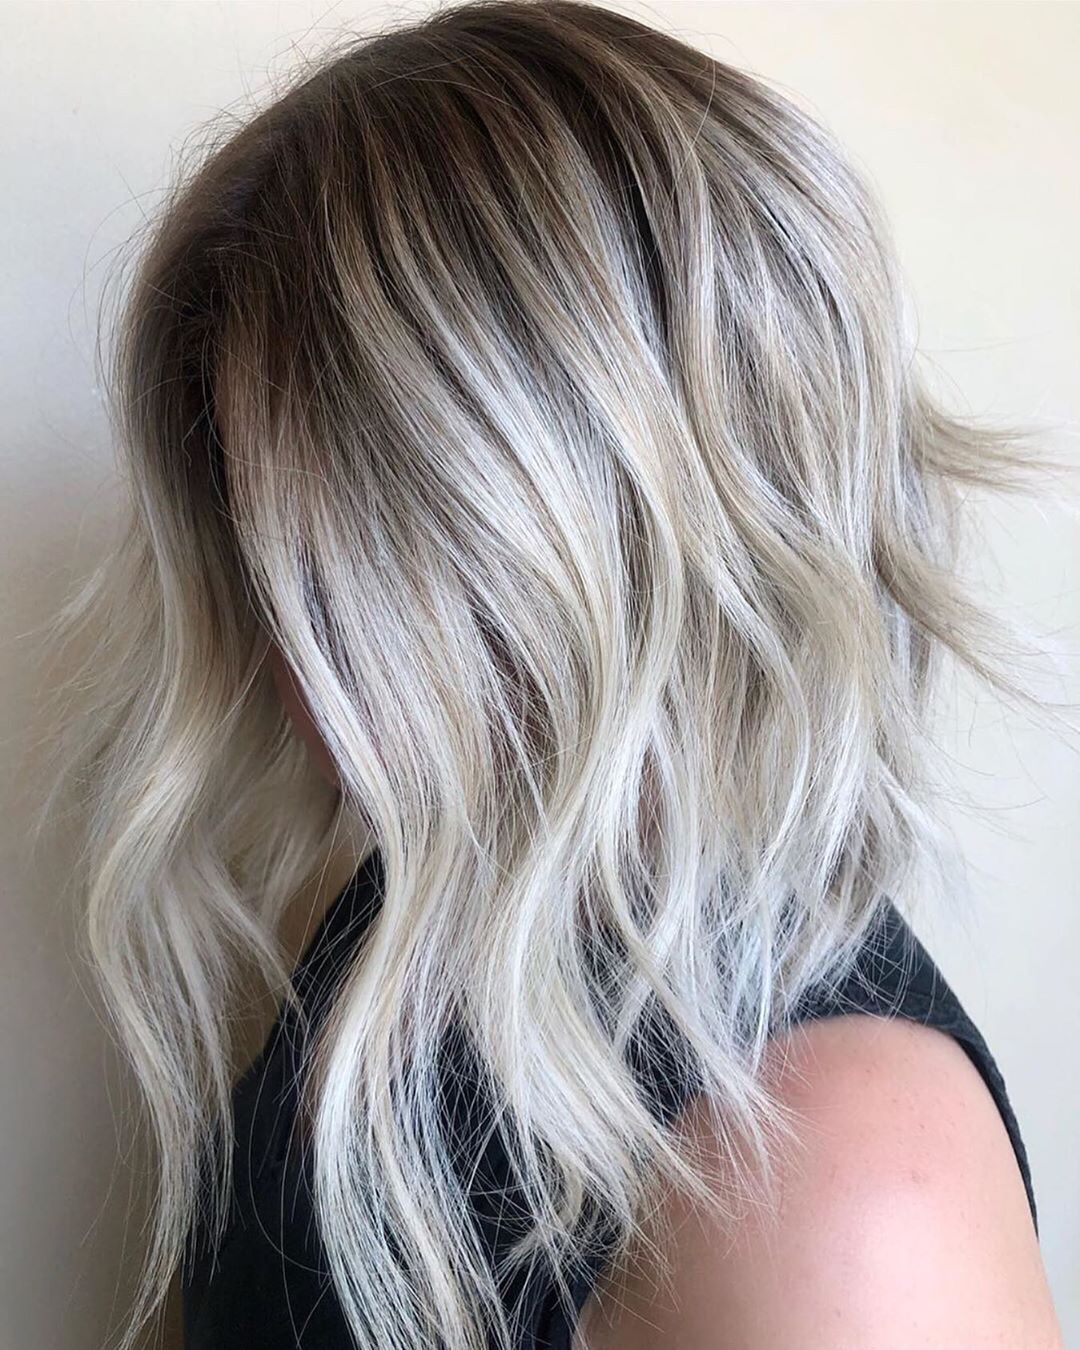 10 Ombre Hairstyles for Medium Length Hair - Women Medium Haircut 2020 - 2021